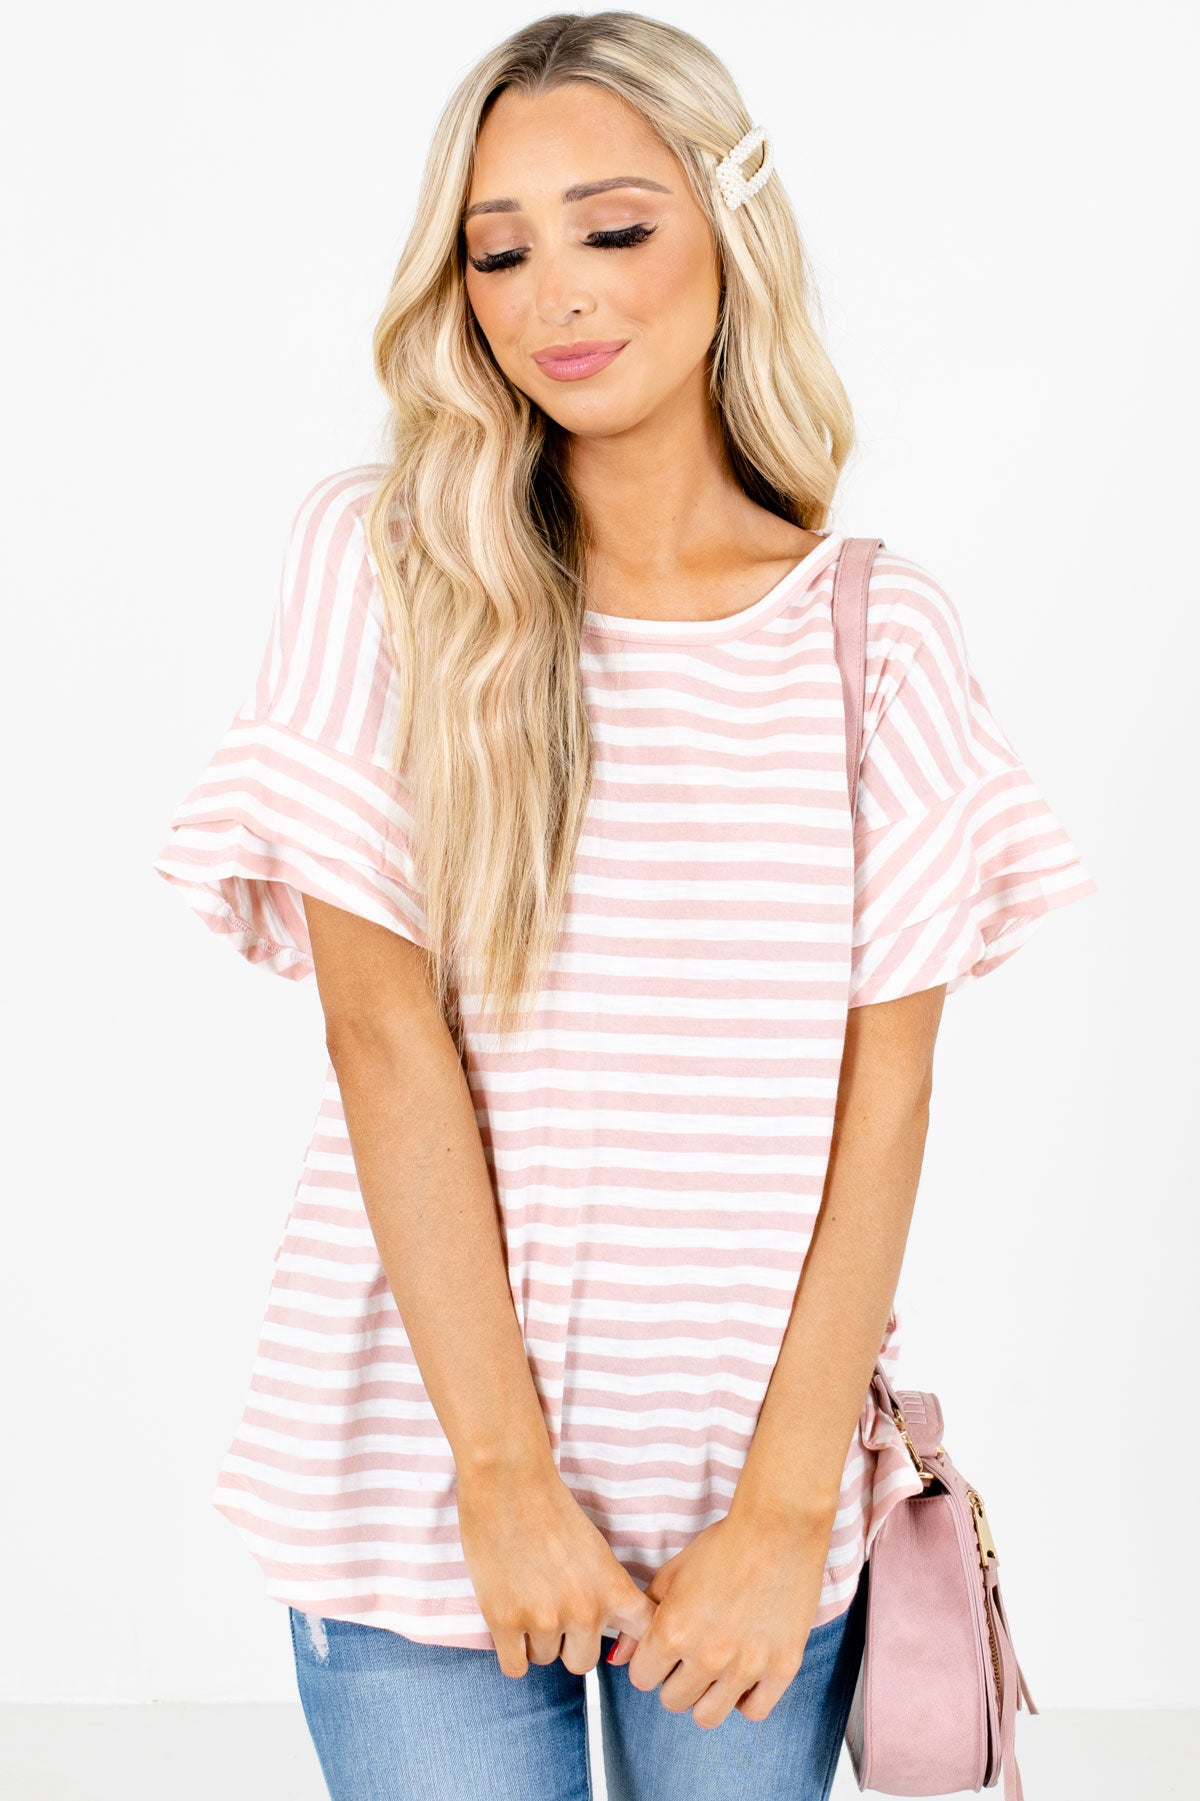 Pink Striped Patterned Boutique Tops for Women